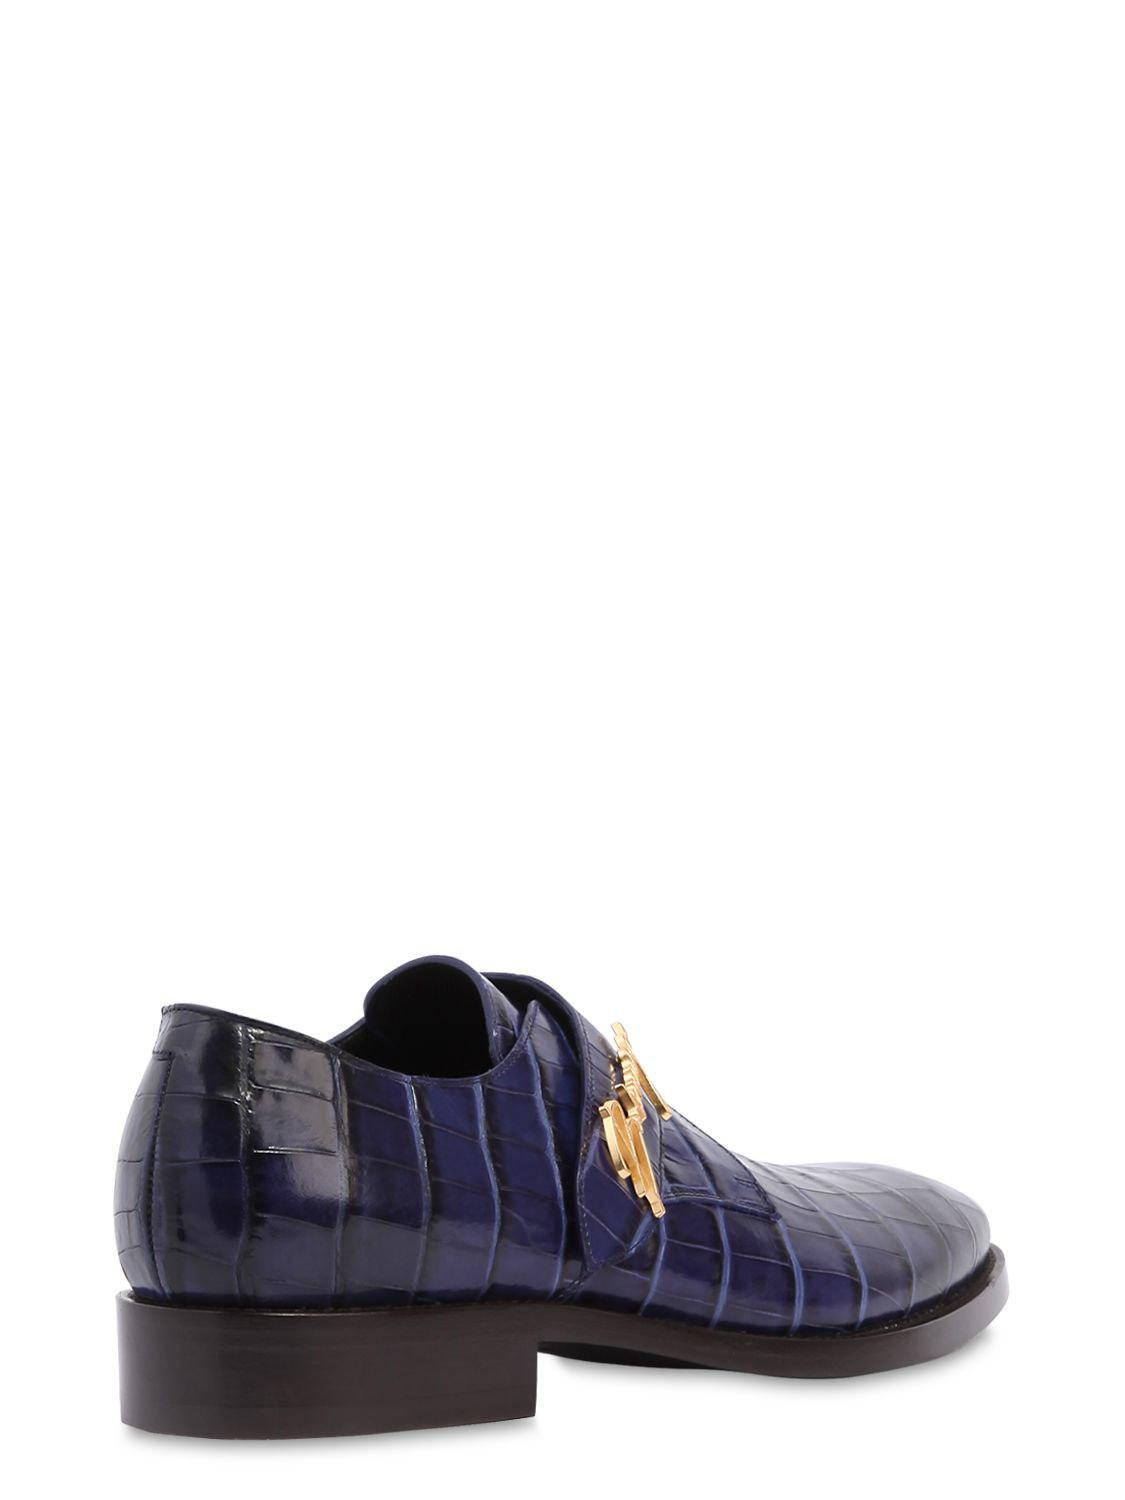 7b2bfa54e0d7 Lyst - Balenciaga Croc Embossed Leather Slip-on Shoes in Blue for Men